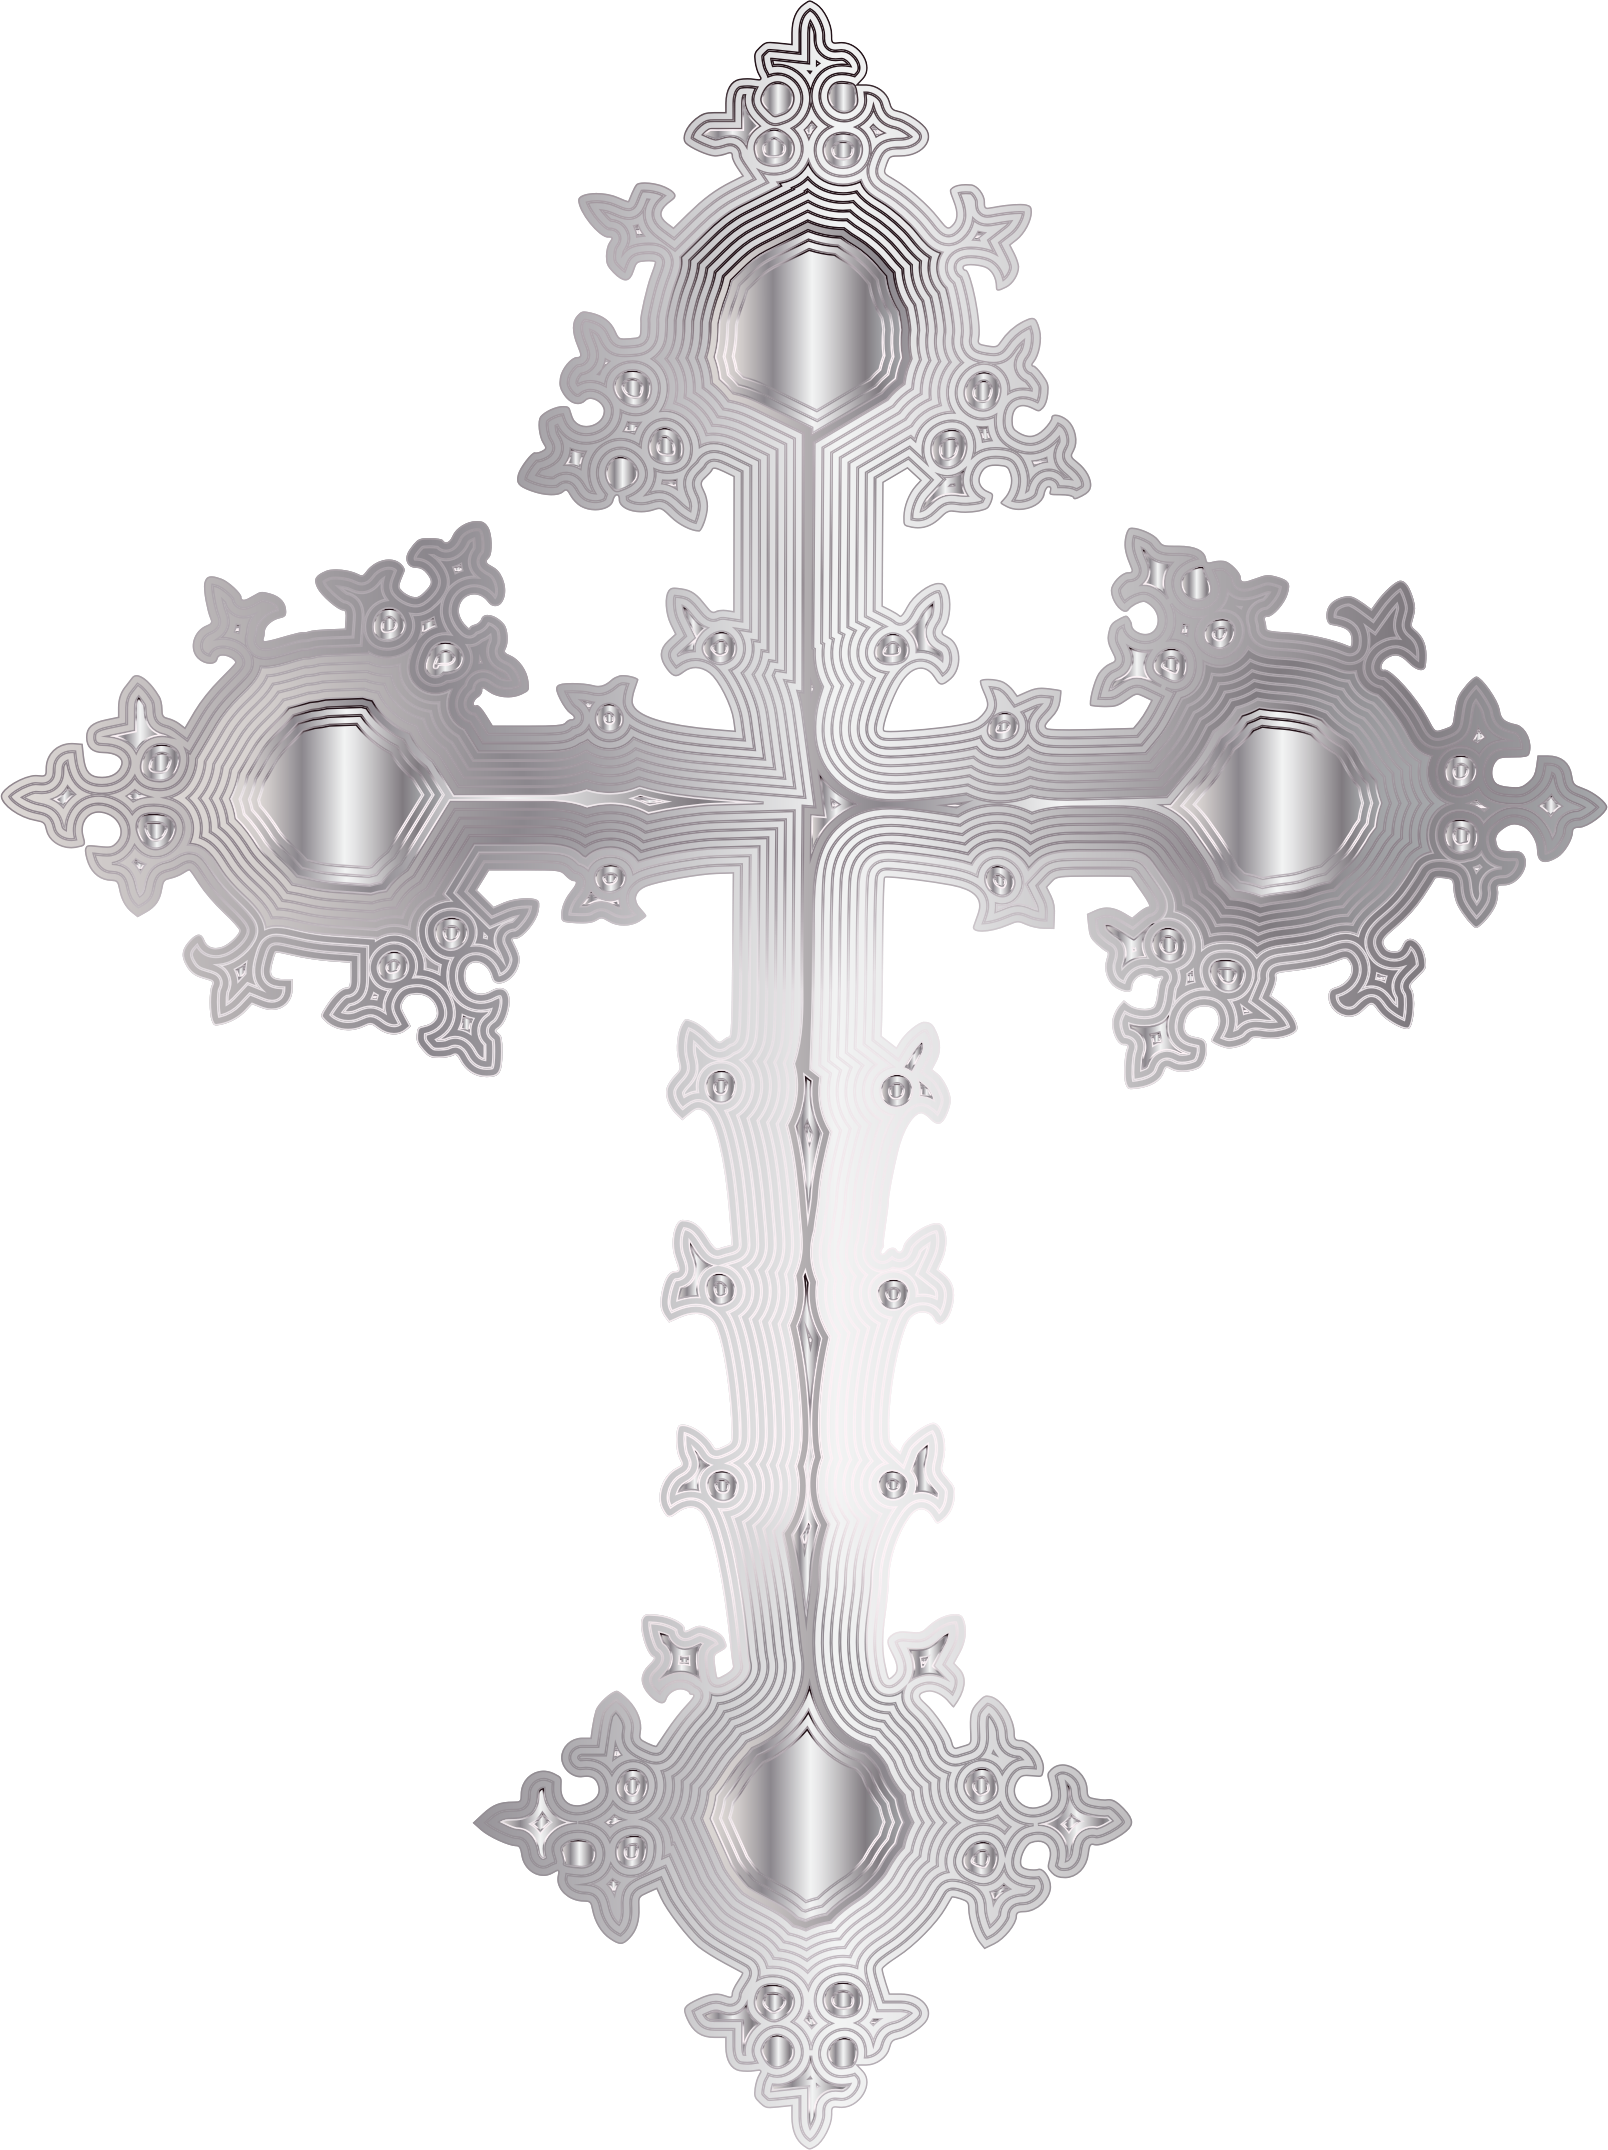 Ornate cross clipart clip art freeuse Platinum Ornate Cross No Background Icons PNG - Free PNG and Icons ... clip art freeuse